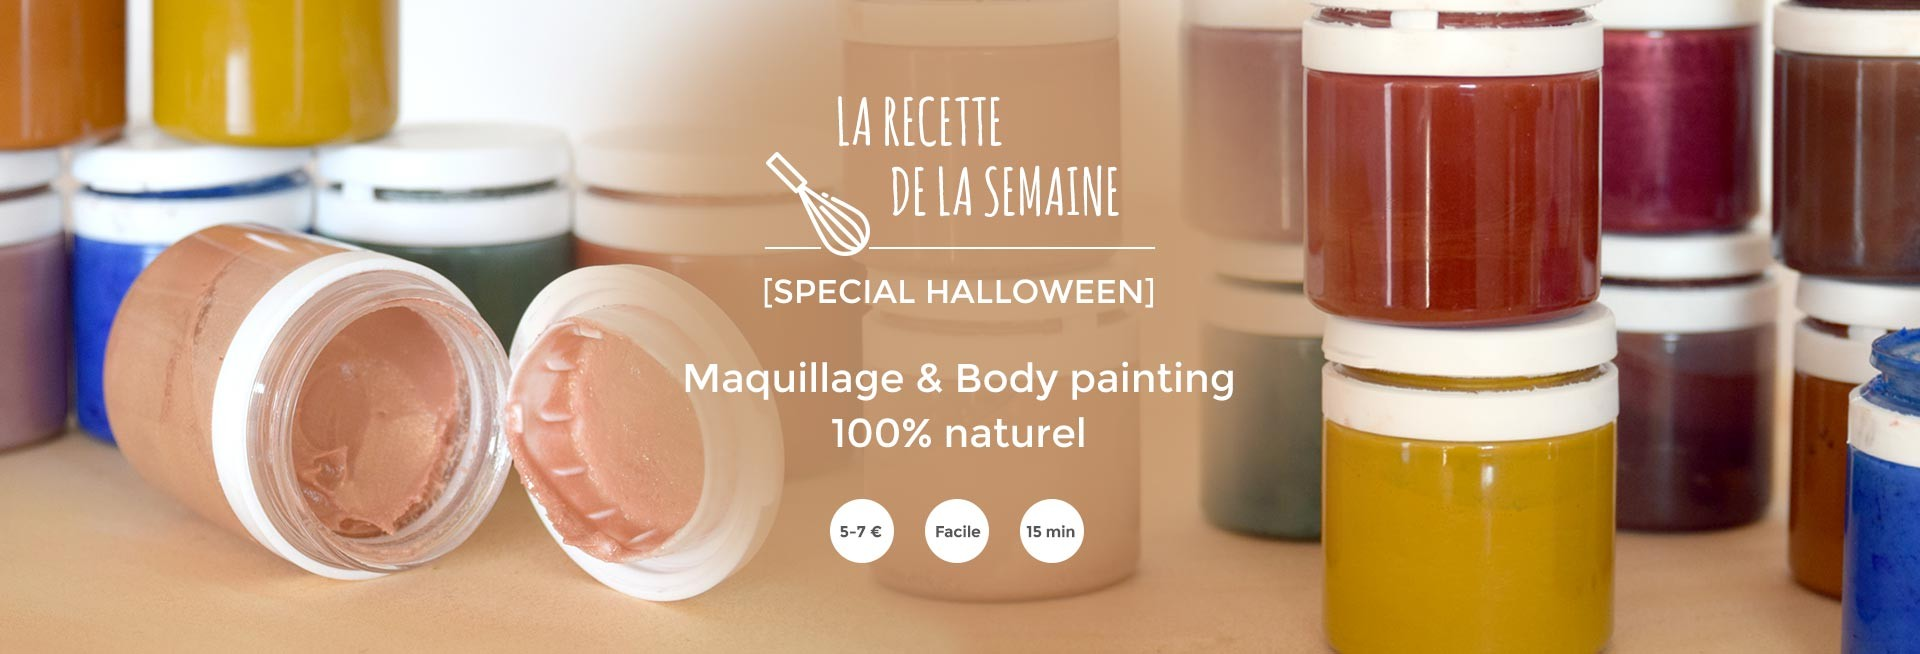 recette : Maquillage & Body painting 100% naturel